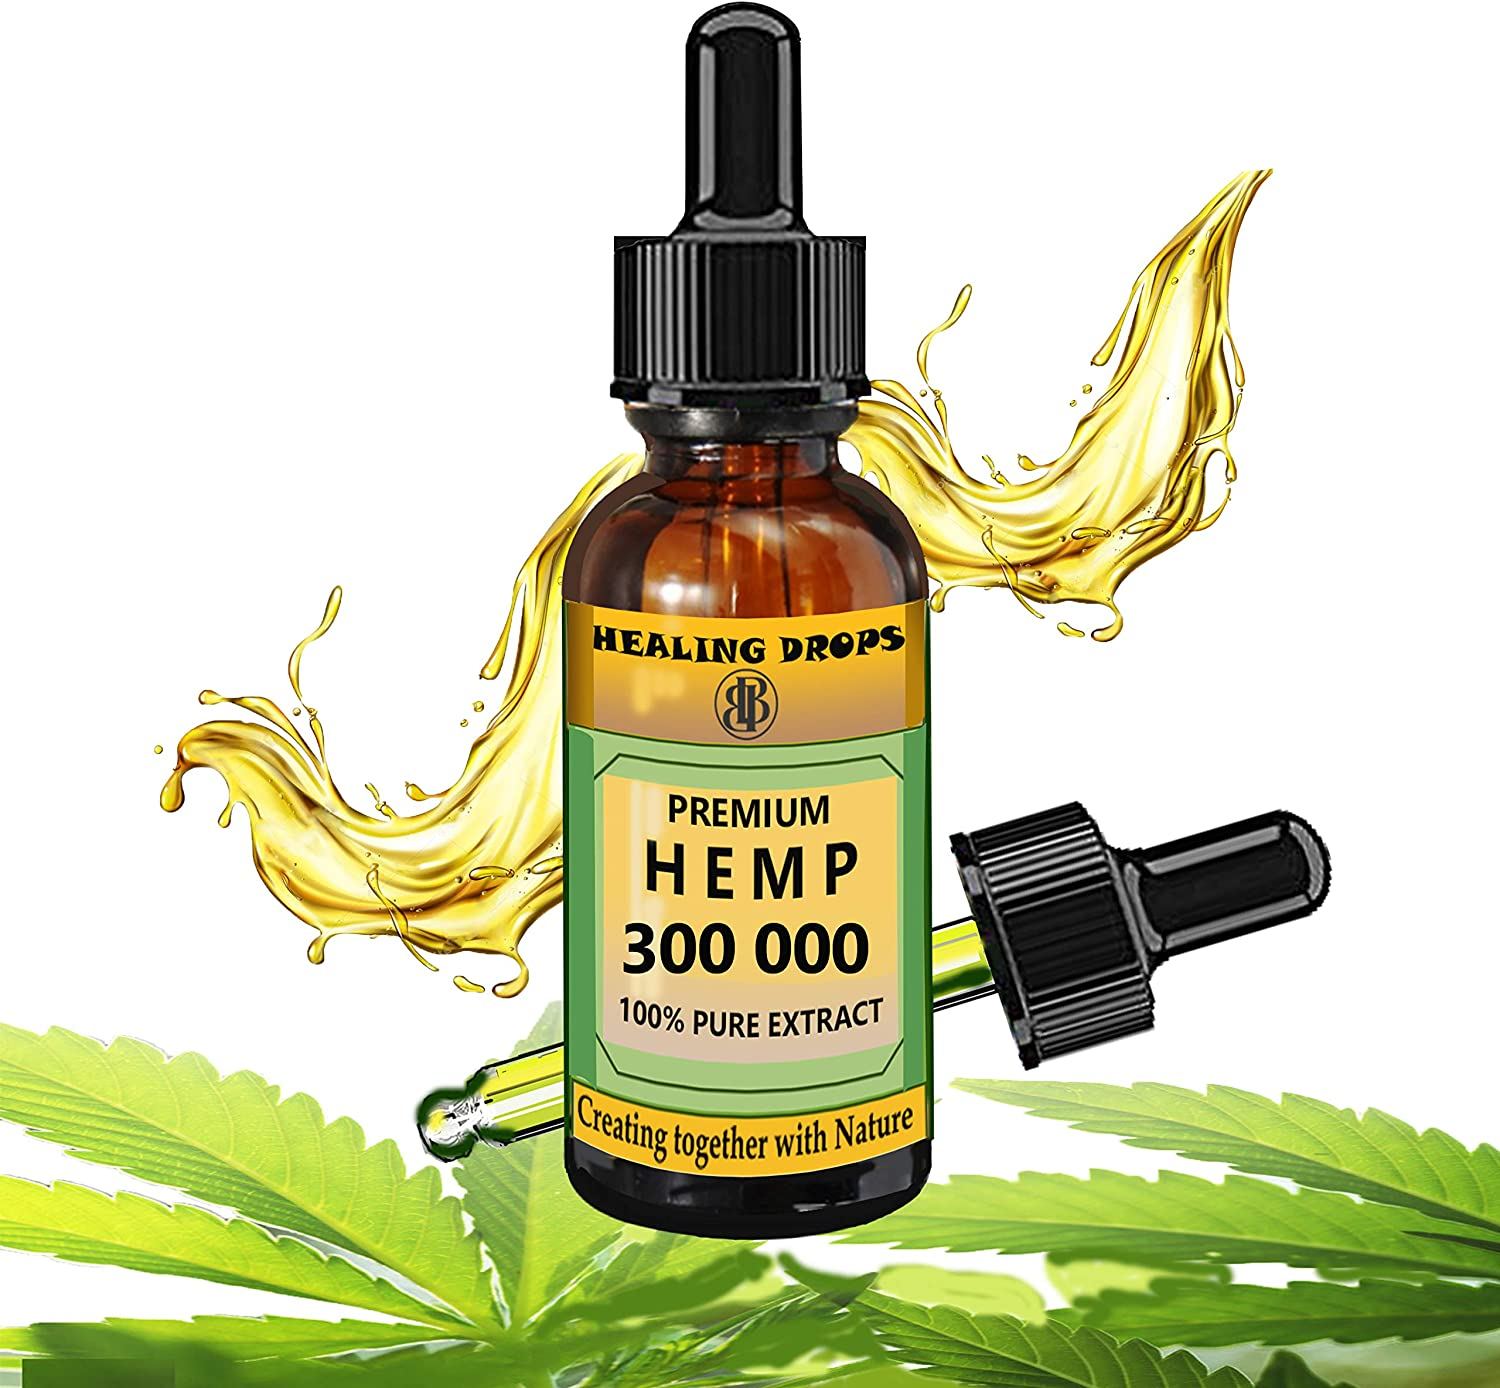 Hemp Oil Drops 300 000 mg 100% Natural Extract, Supports Anti Anxiety and Stress, Natural Health, Dietary Supplement Rich in Omega 3 6 9 Fatty Acids for Skin & Heart & Immune Support